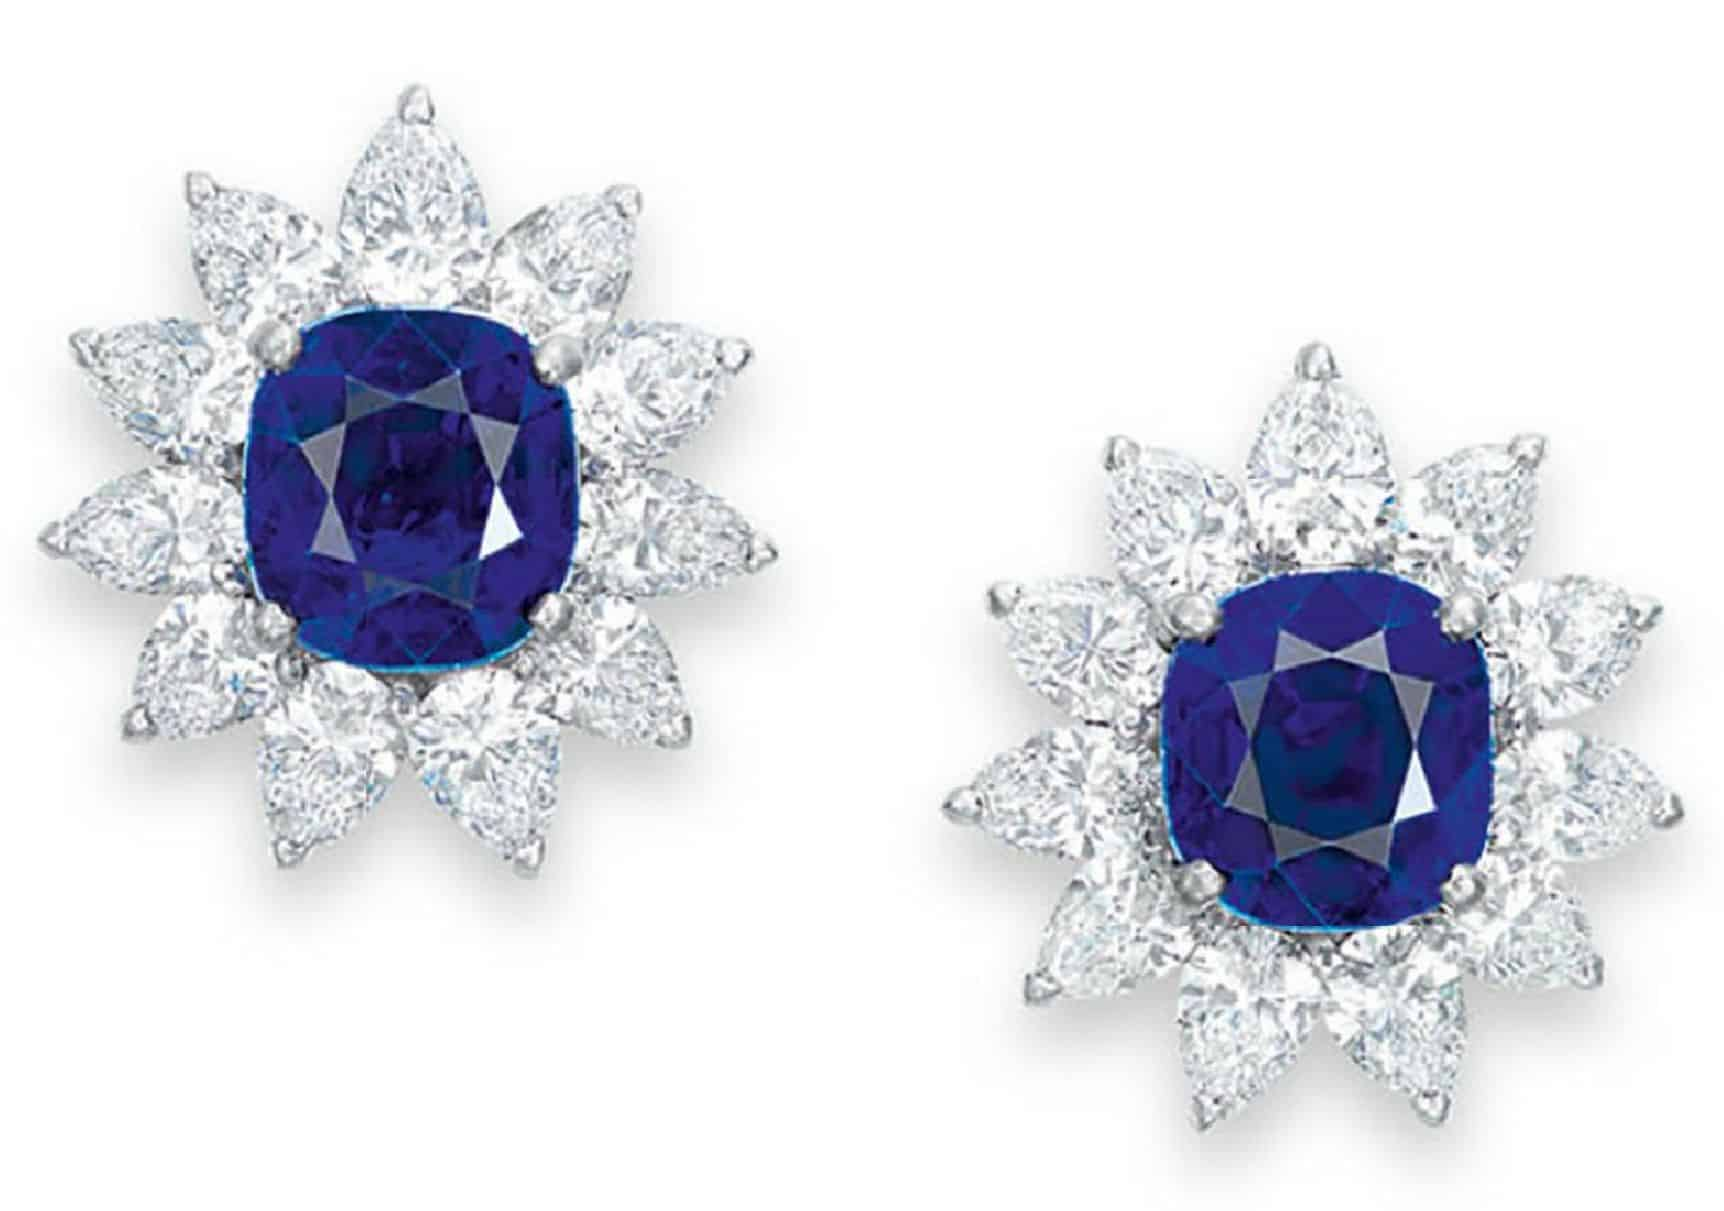 LOT 2048 - PAIR OF EARRINGS FROM THE SET OF SAPPHIRE AND DIAMOND JEWELRY